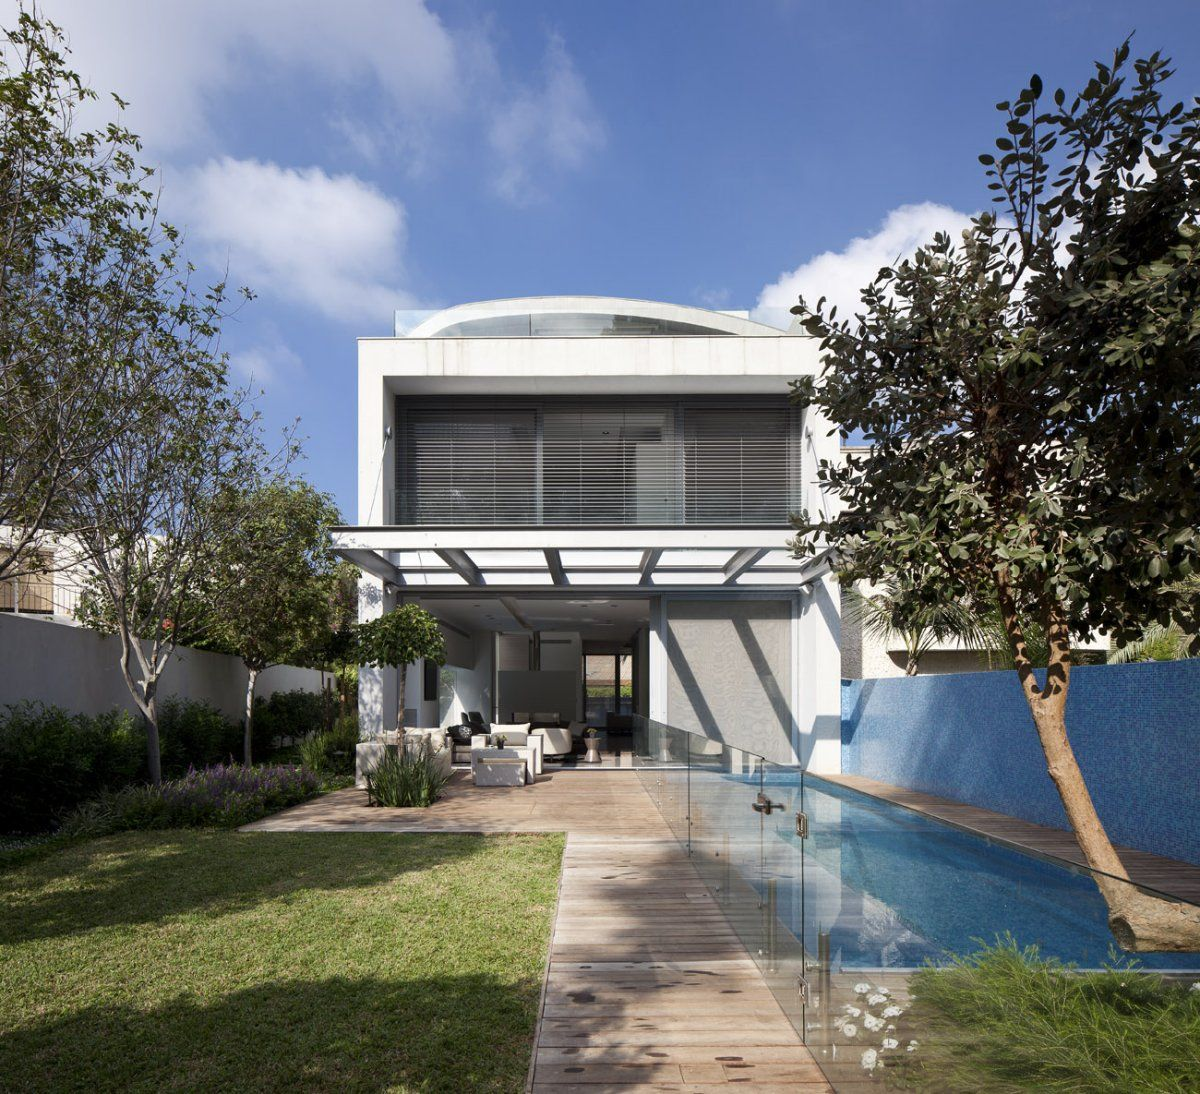 Domb Architects have designed the SL House located in a suburb of Tel Aviv, Israel.